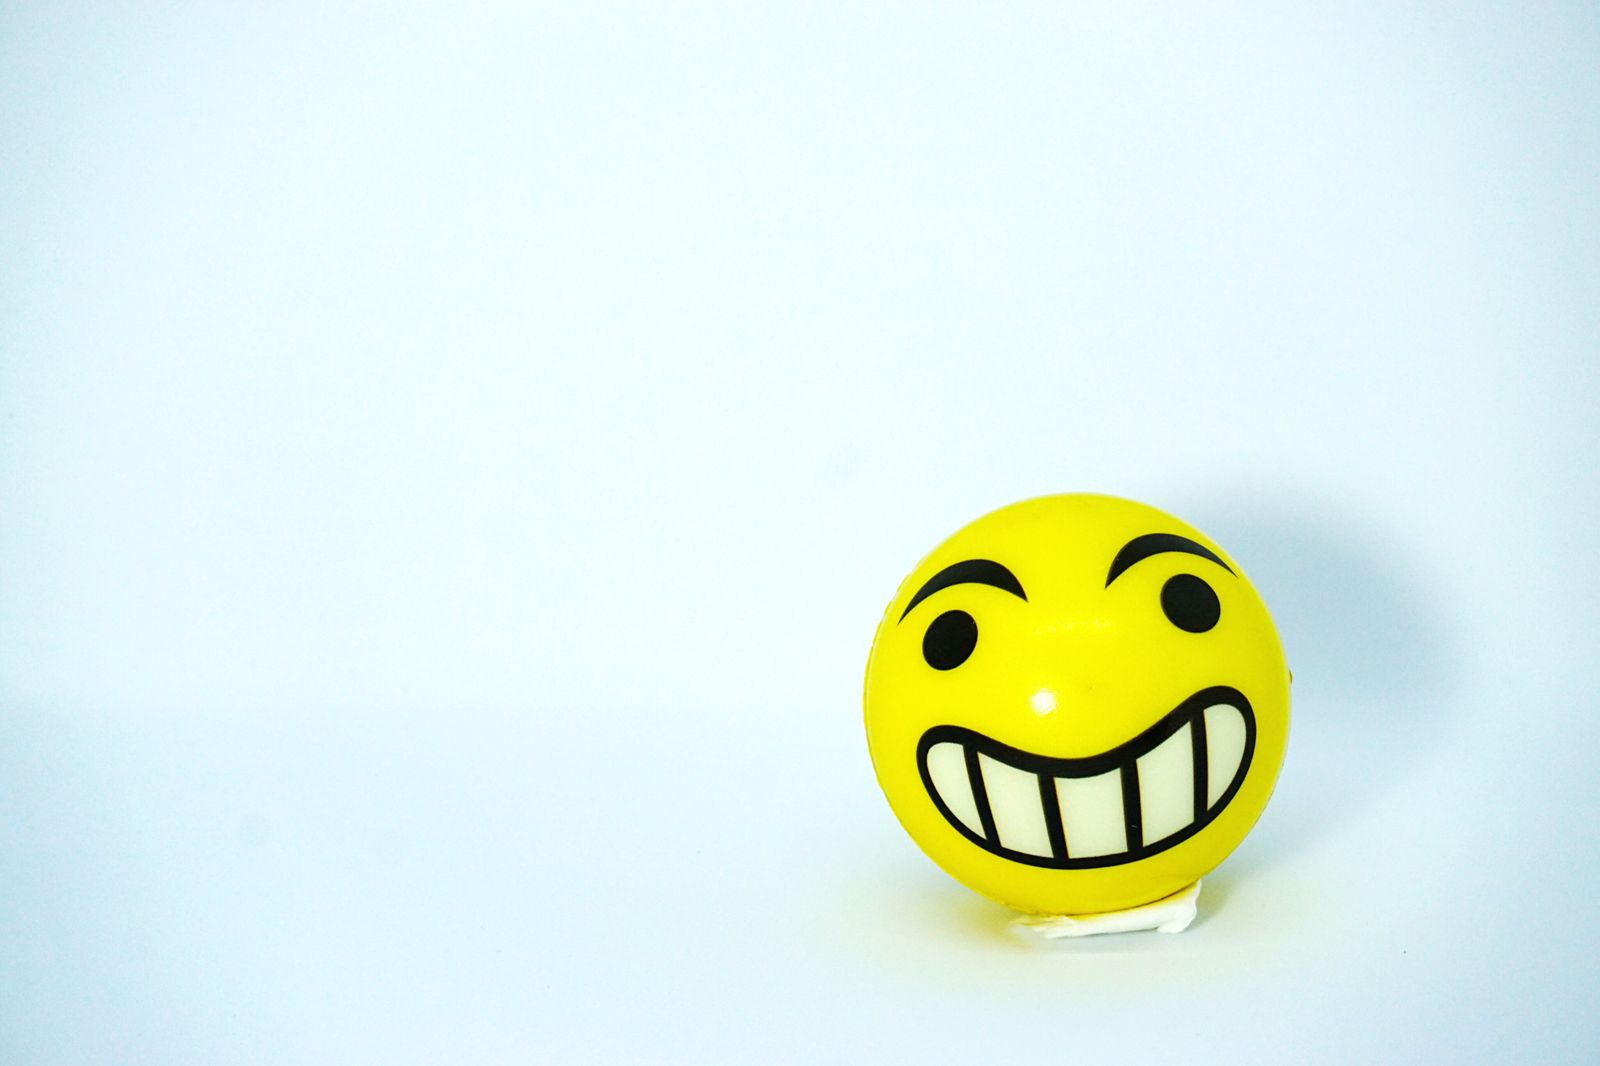 Smiley emoji yellow stress ball with white background. Happy and emoji concept.